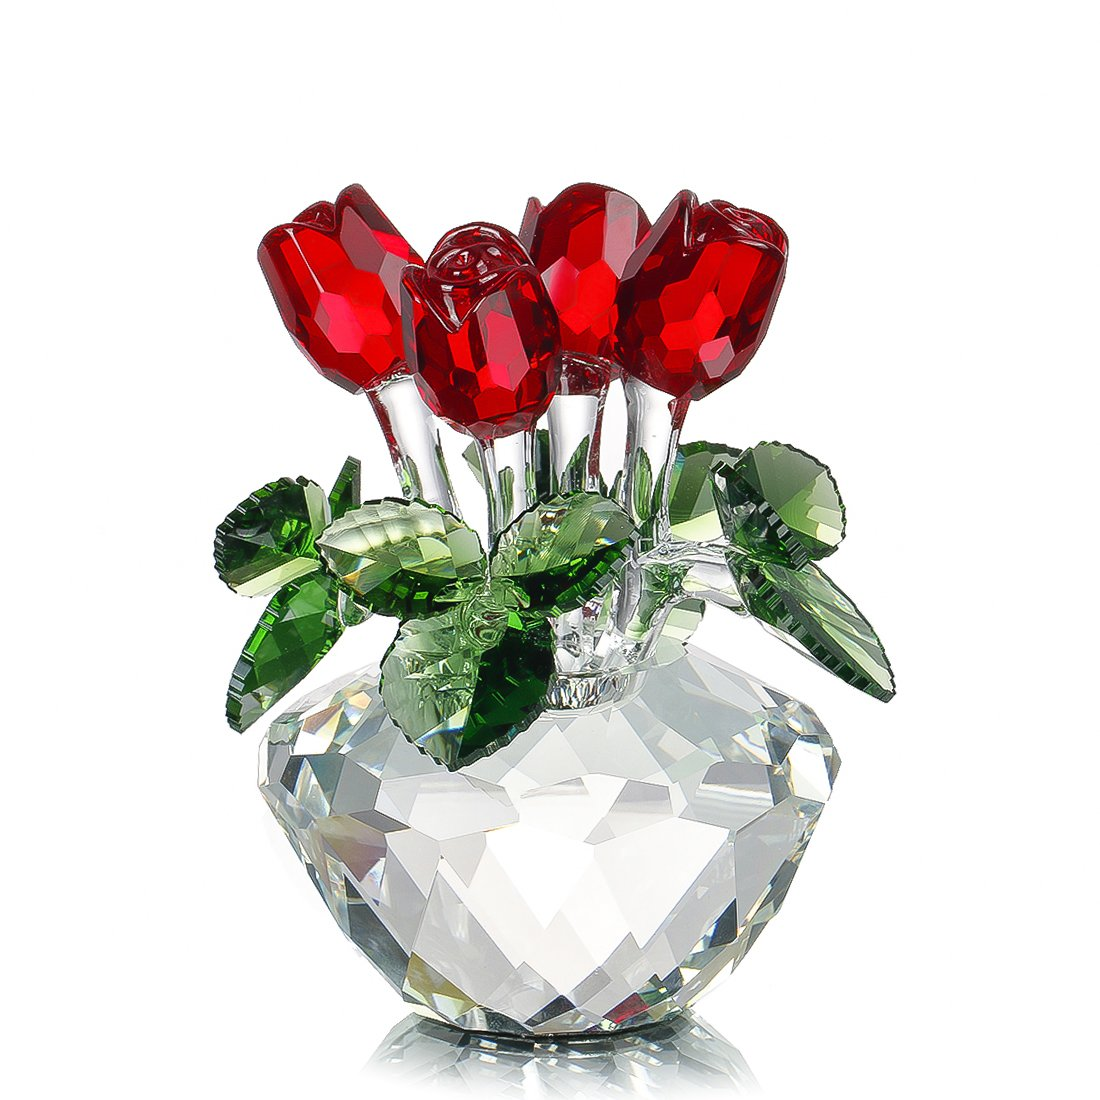 H&D HYALINE & DORA Red Rose Figurine Ornament Spring Bouquet Crystal Glass Flowers Gift-Boxed